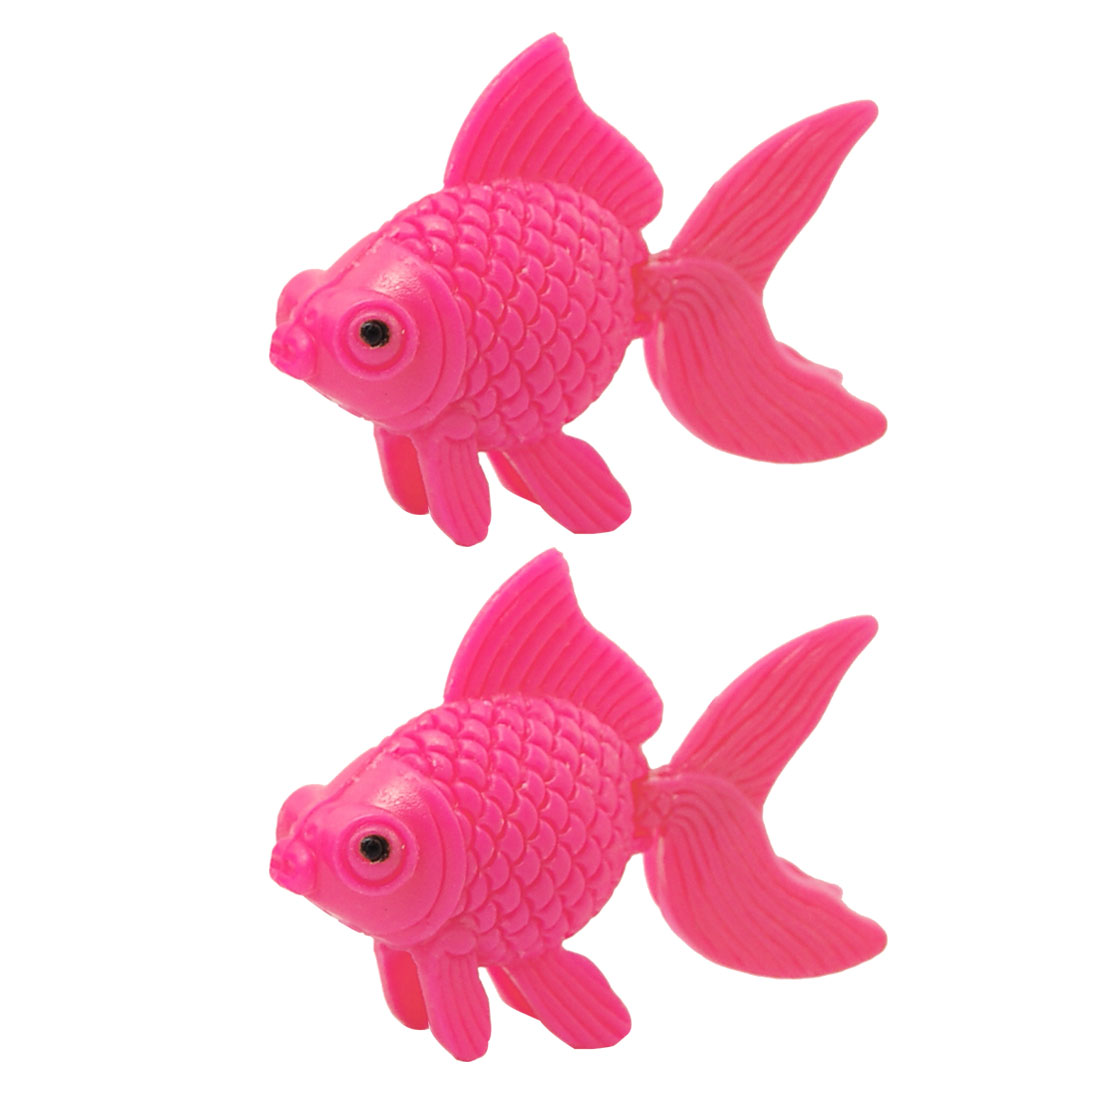 2 Pcs Pink Plastic Floating Goldfish Decor for Aquarium